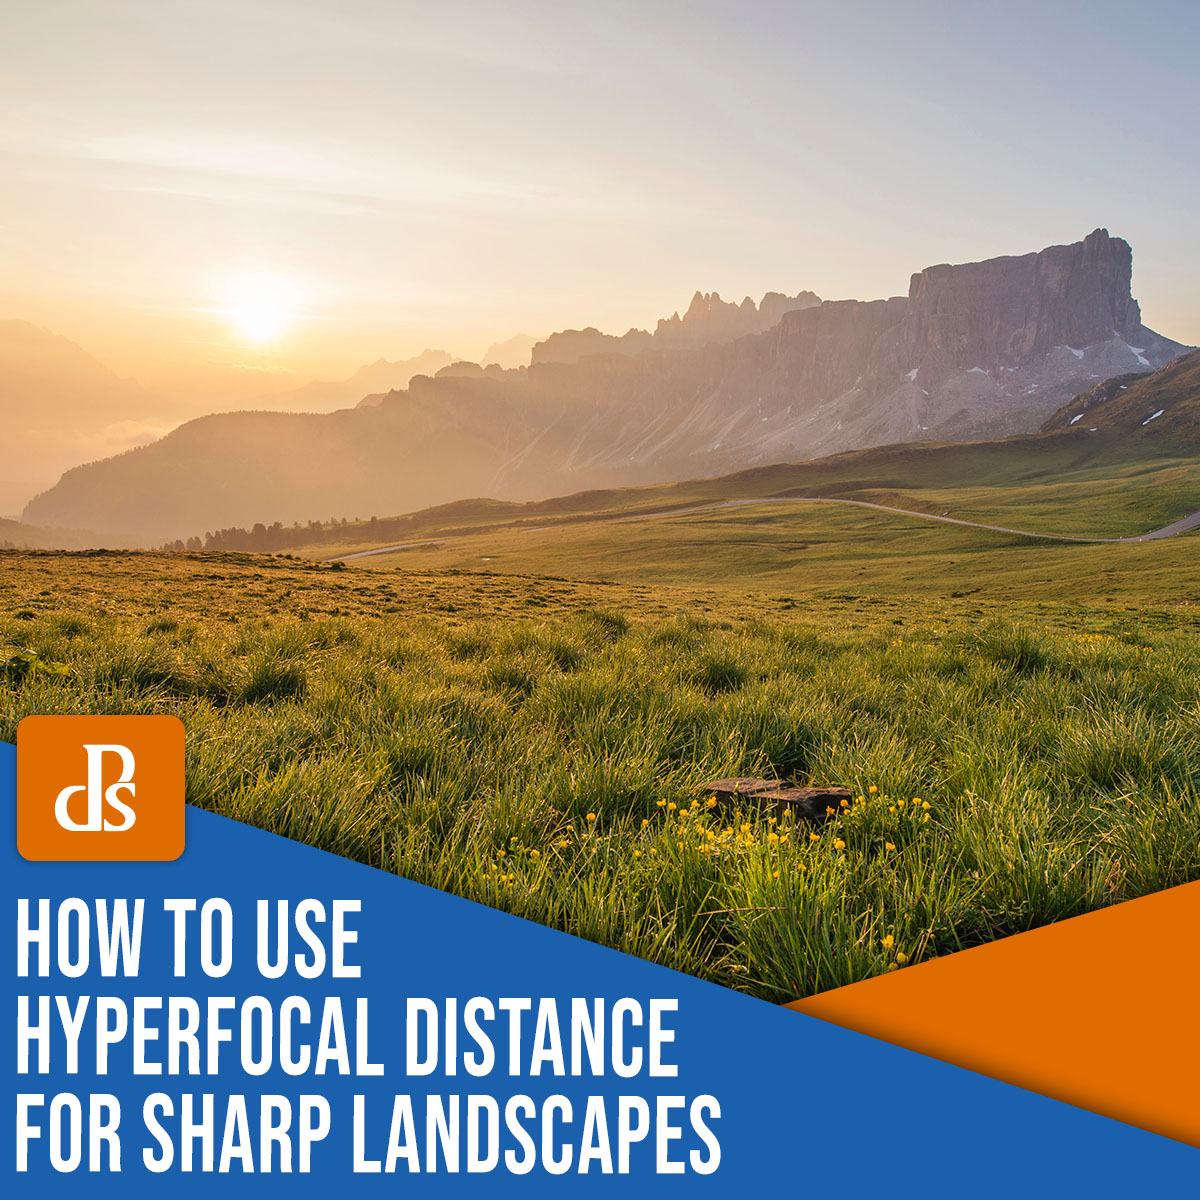 How to use hyperfocal distance for sharp landscapes